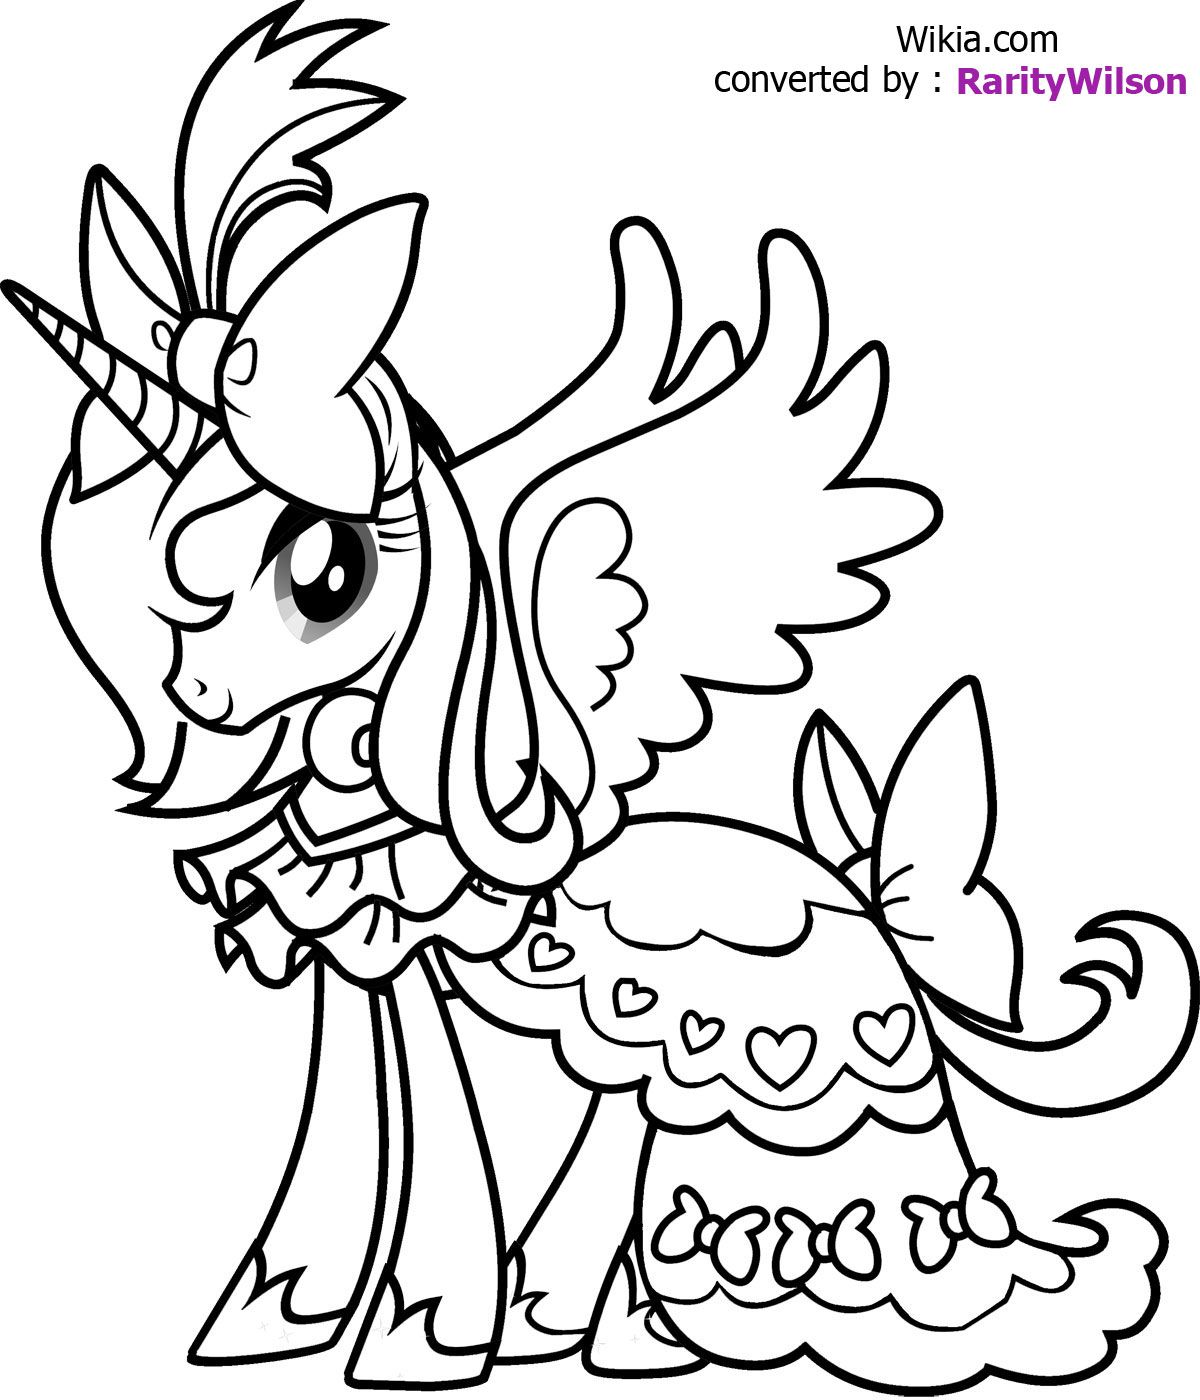 Little princess coloring pages - Unicorn Rainbow Coloring Pages Printable Coloring Pages Sheets For Kids Get The Latest Free Unicorn Rainbow Coloring Pages Images Favorite Coloring Pages